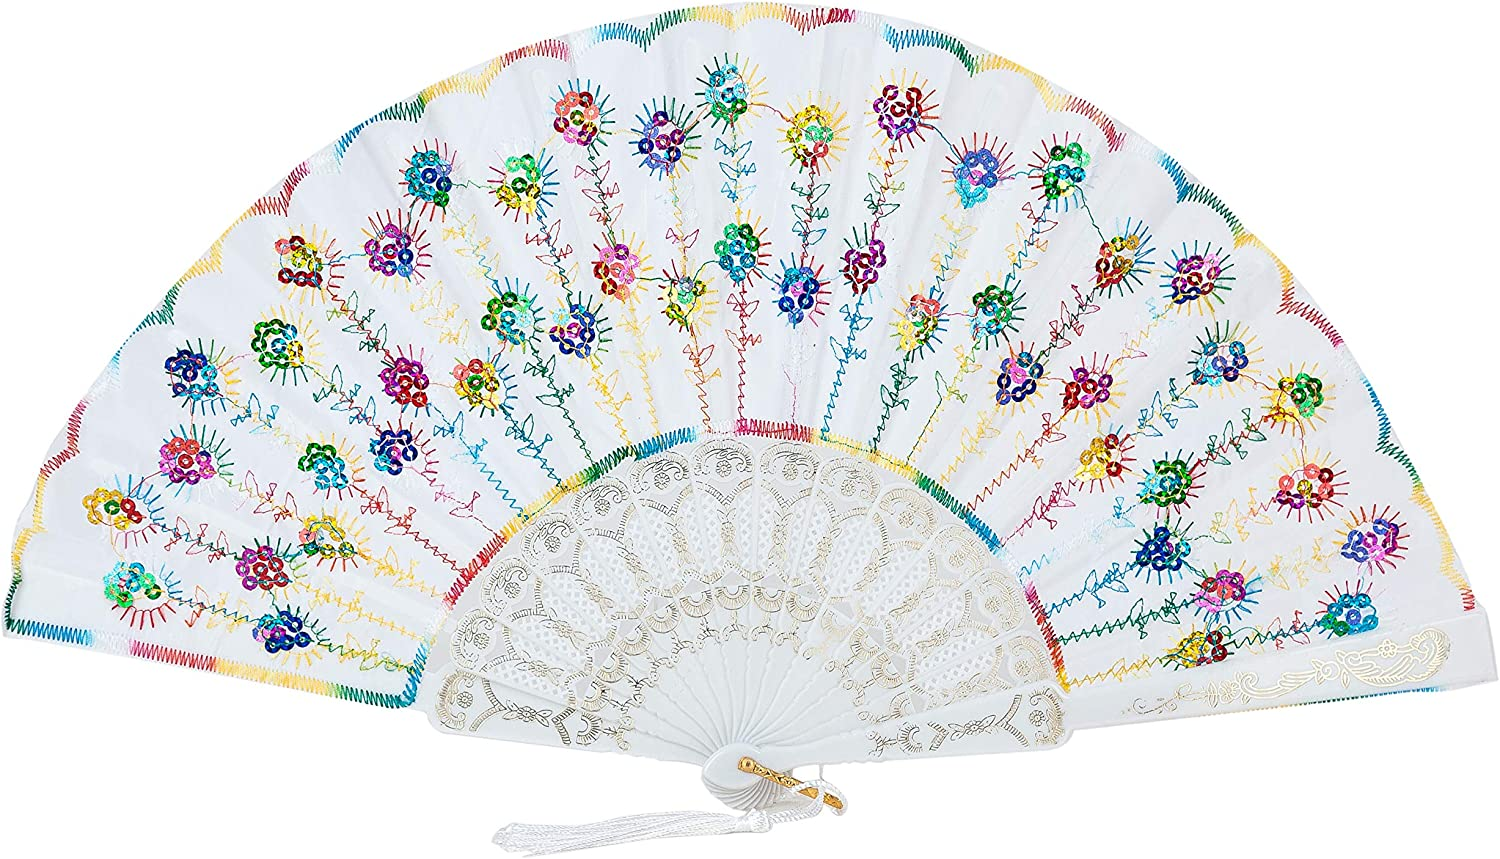 Sepwedd 30Pcs White Folding Fans for Women,Handmade Elegant Colorful Embroidered Flower Peacock Pattern Sequin Fabric Folding Fans Bridal Dancing Props Church Wedding Gift Party Favors White Gift Bags